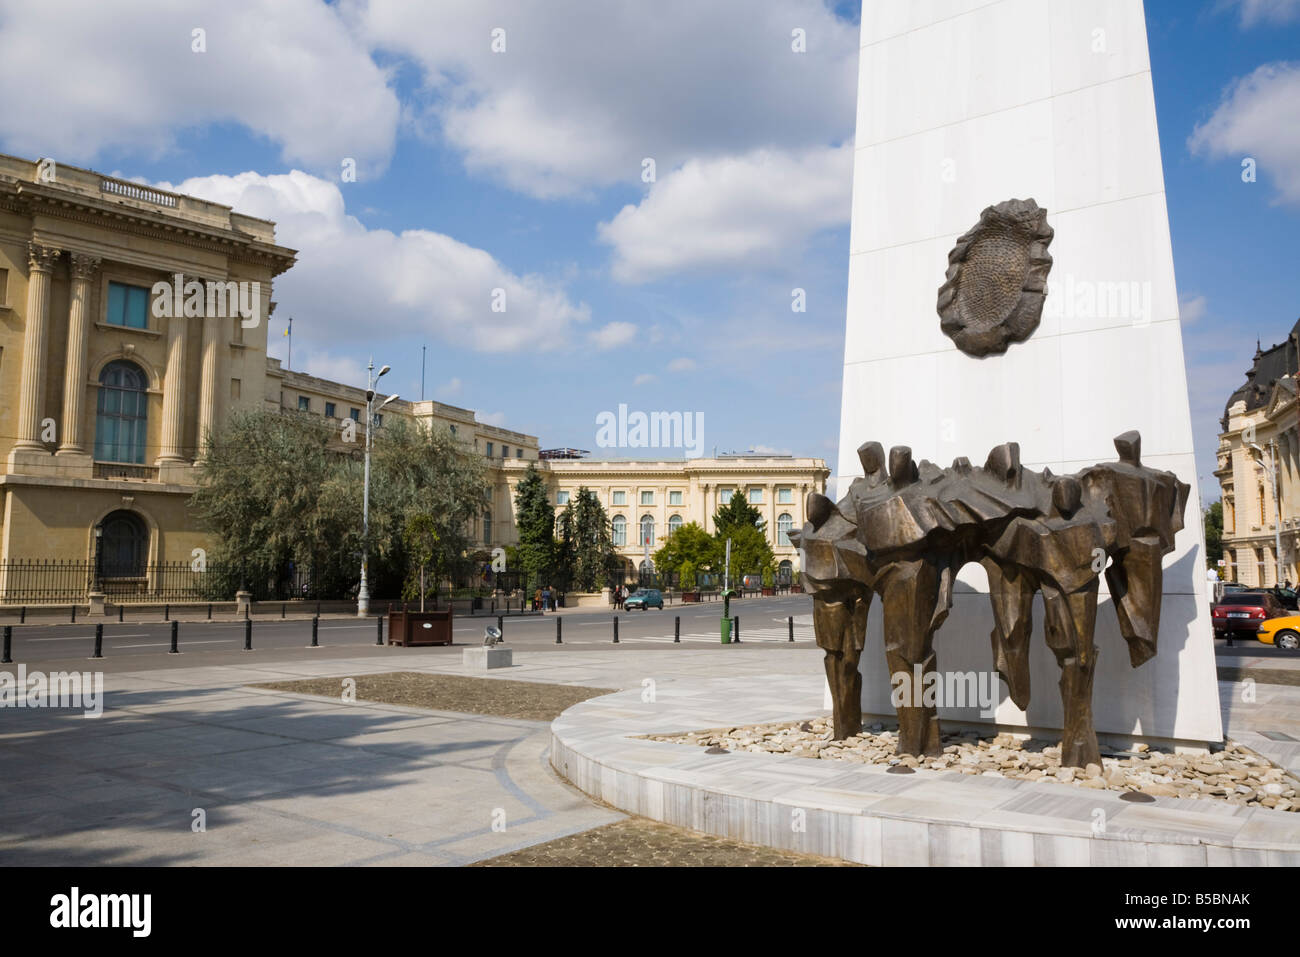 Bucharest Romania Revolution Monument and bronze statues memorial to the 1989 dead in Revolution Square in city - Stock Image